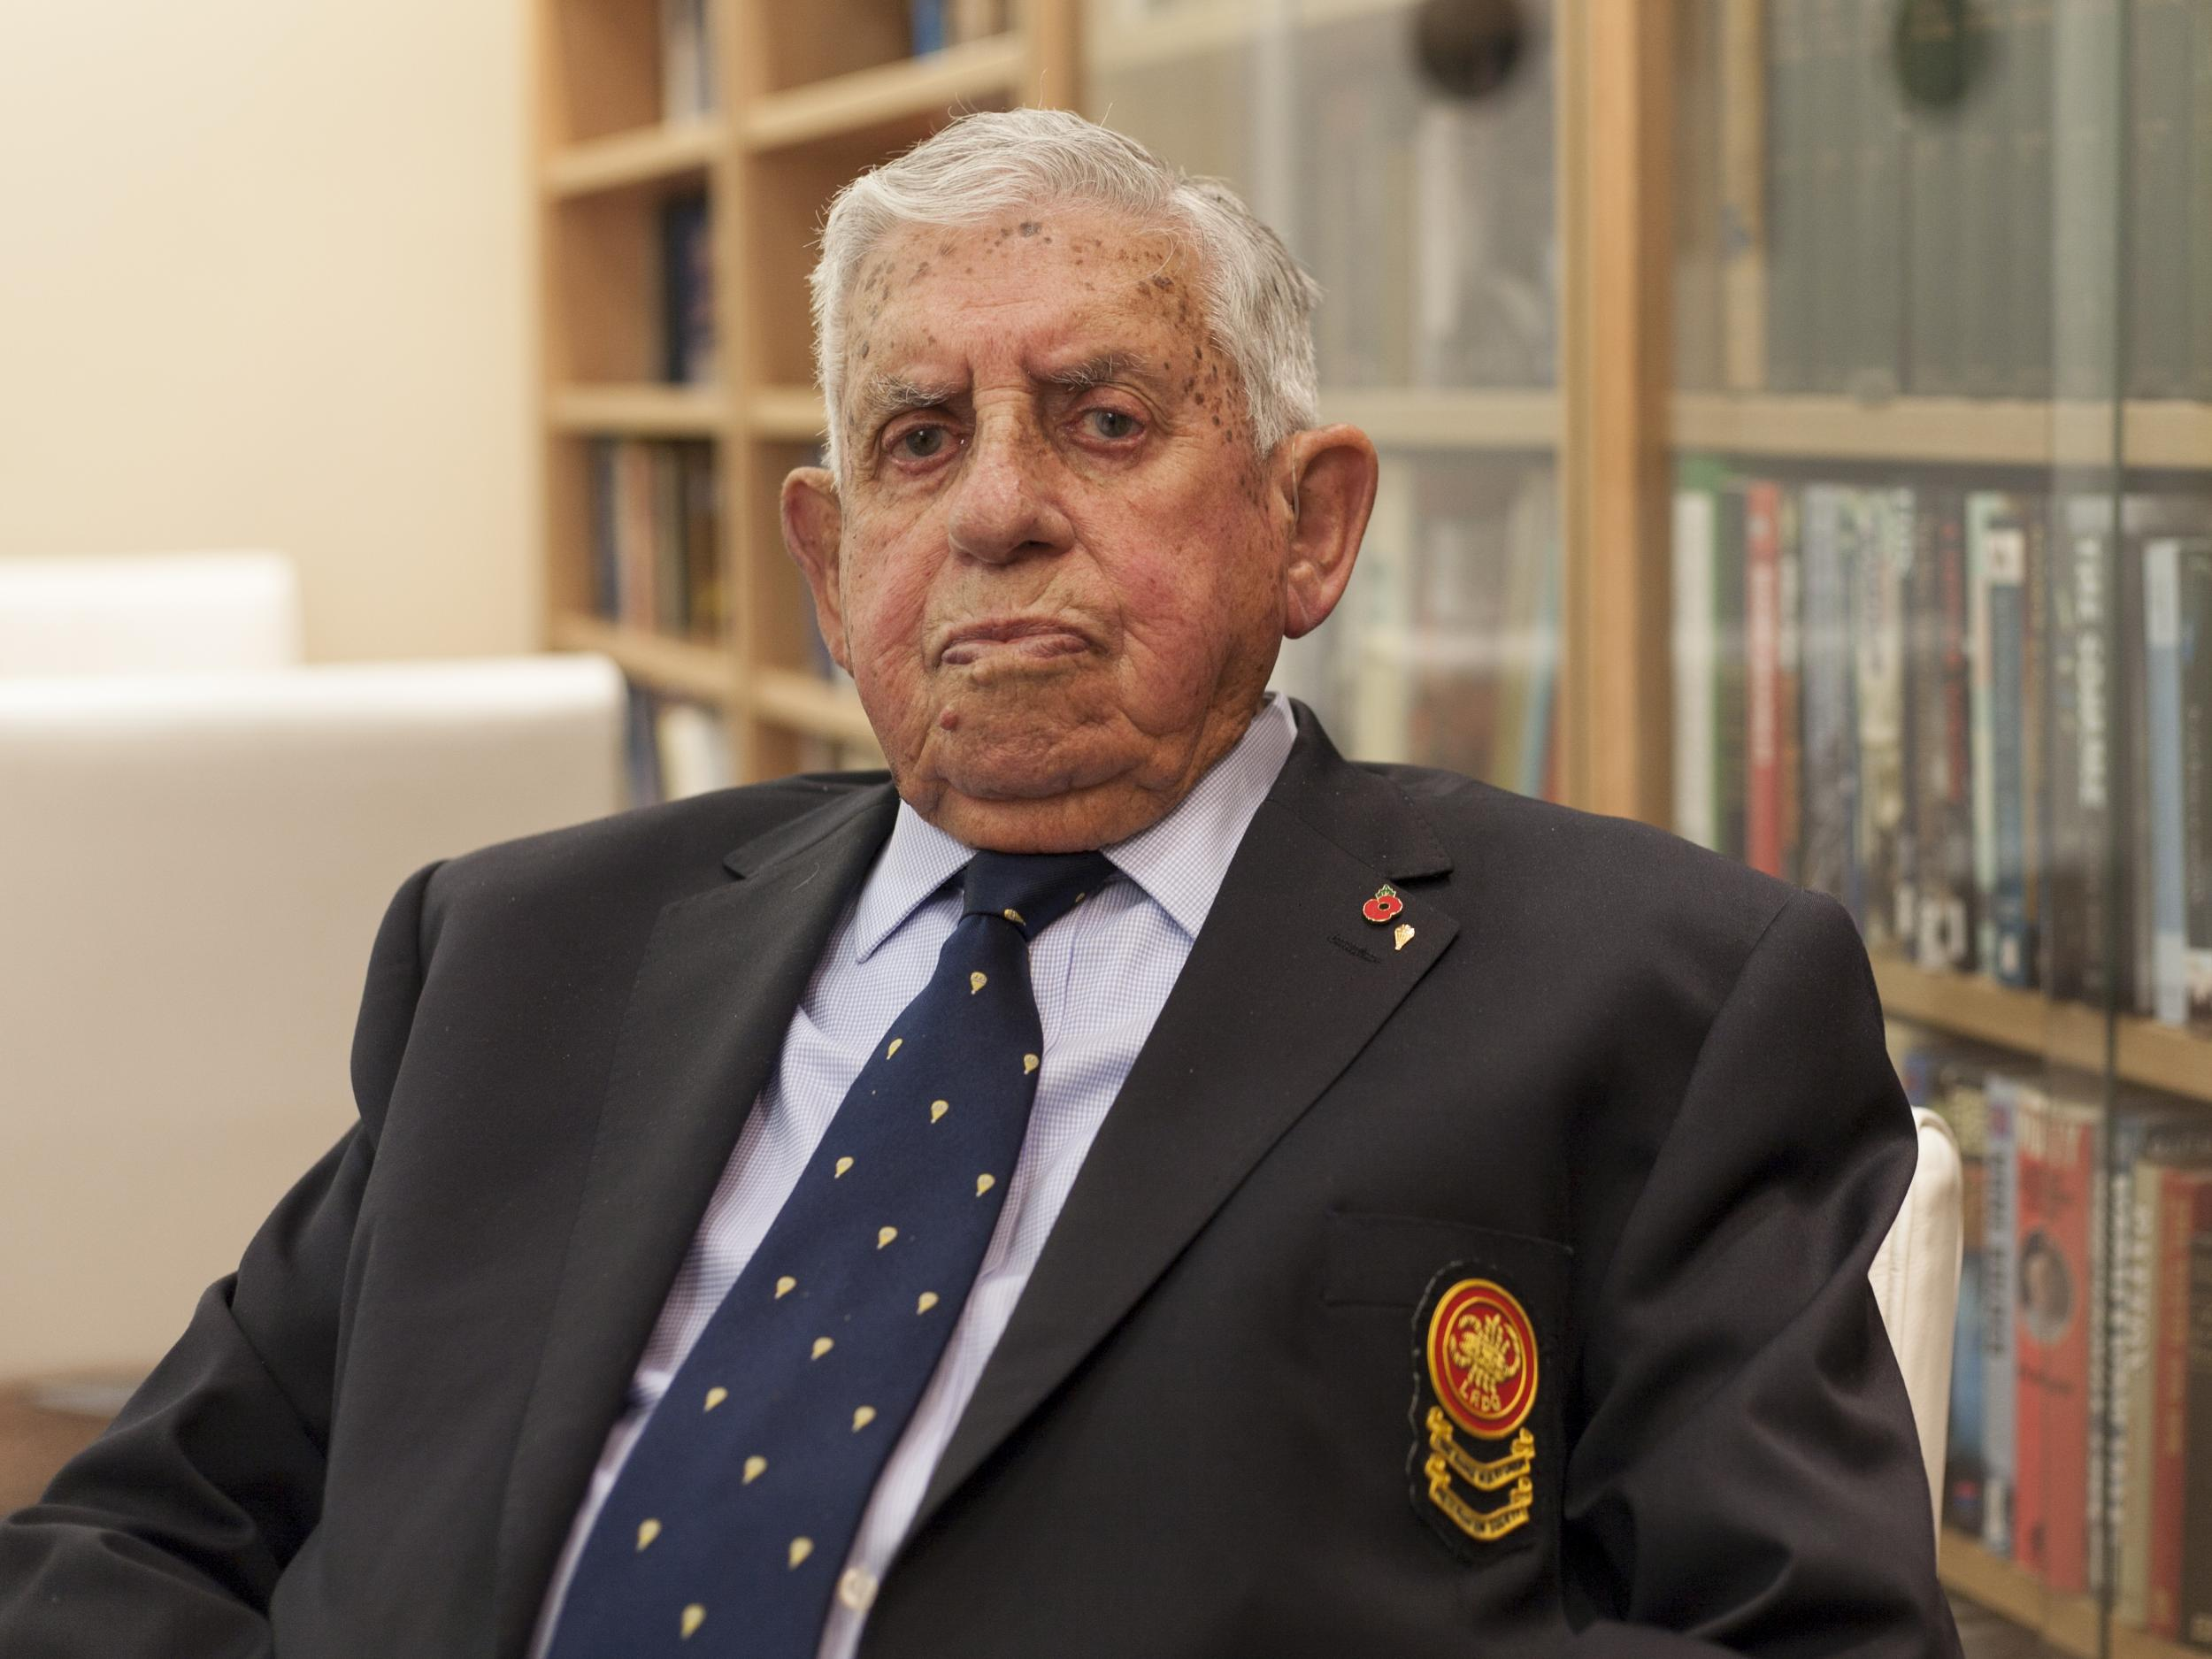 'I was just a kid': SAS veteran speaks out, eight decades on from Second World War service